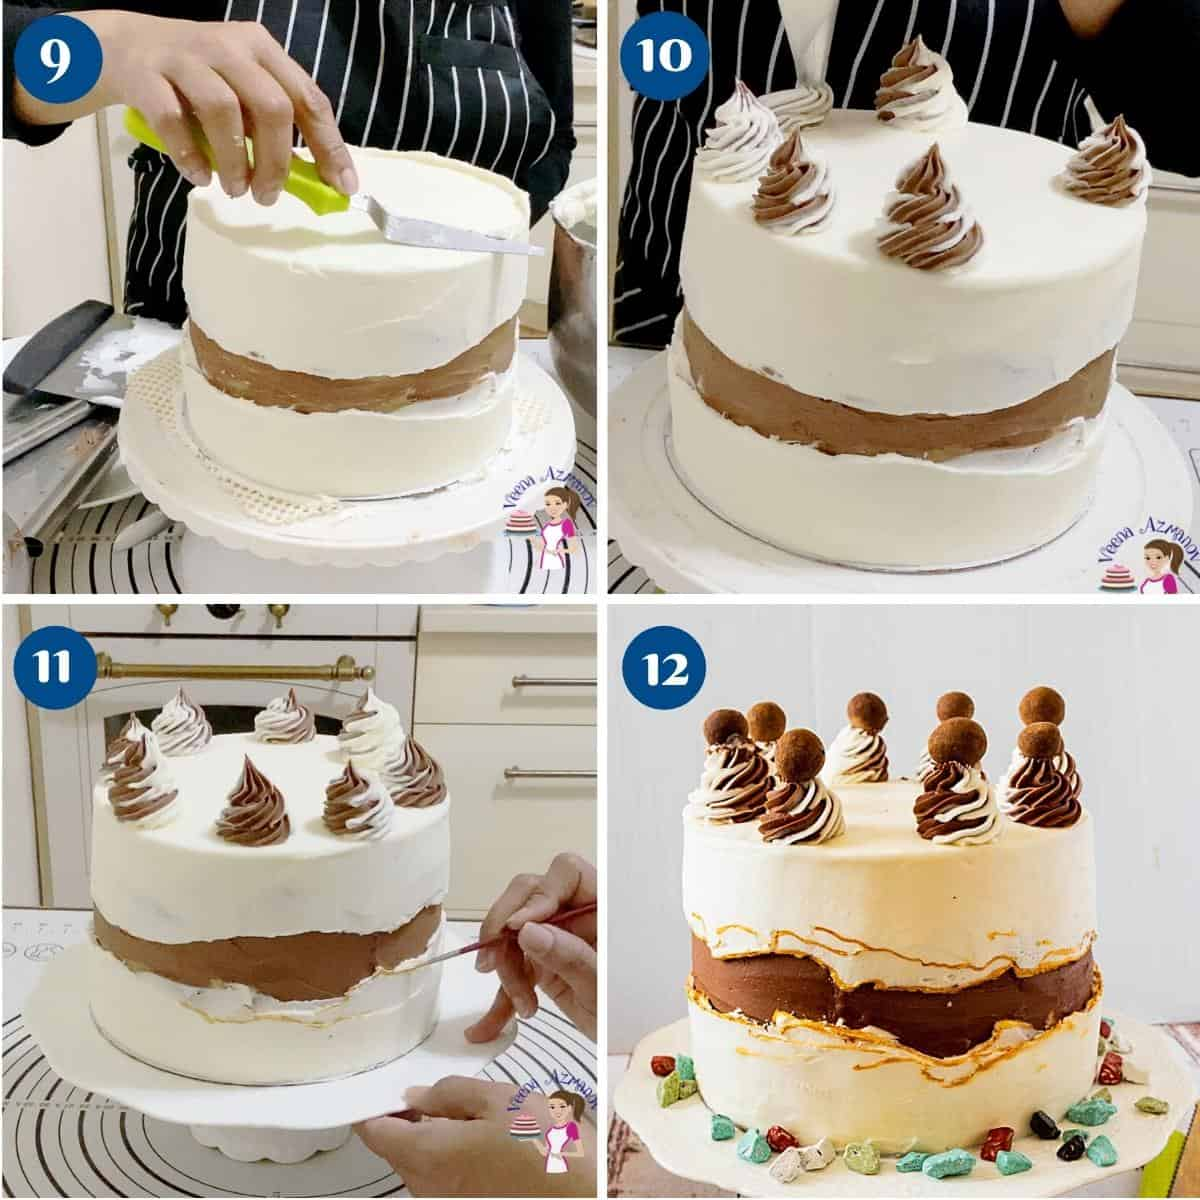 Progress pictures collage for frosting the buttercream cake.